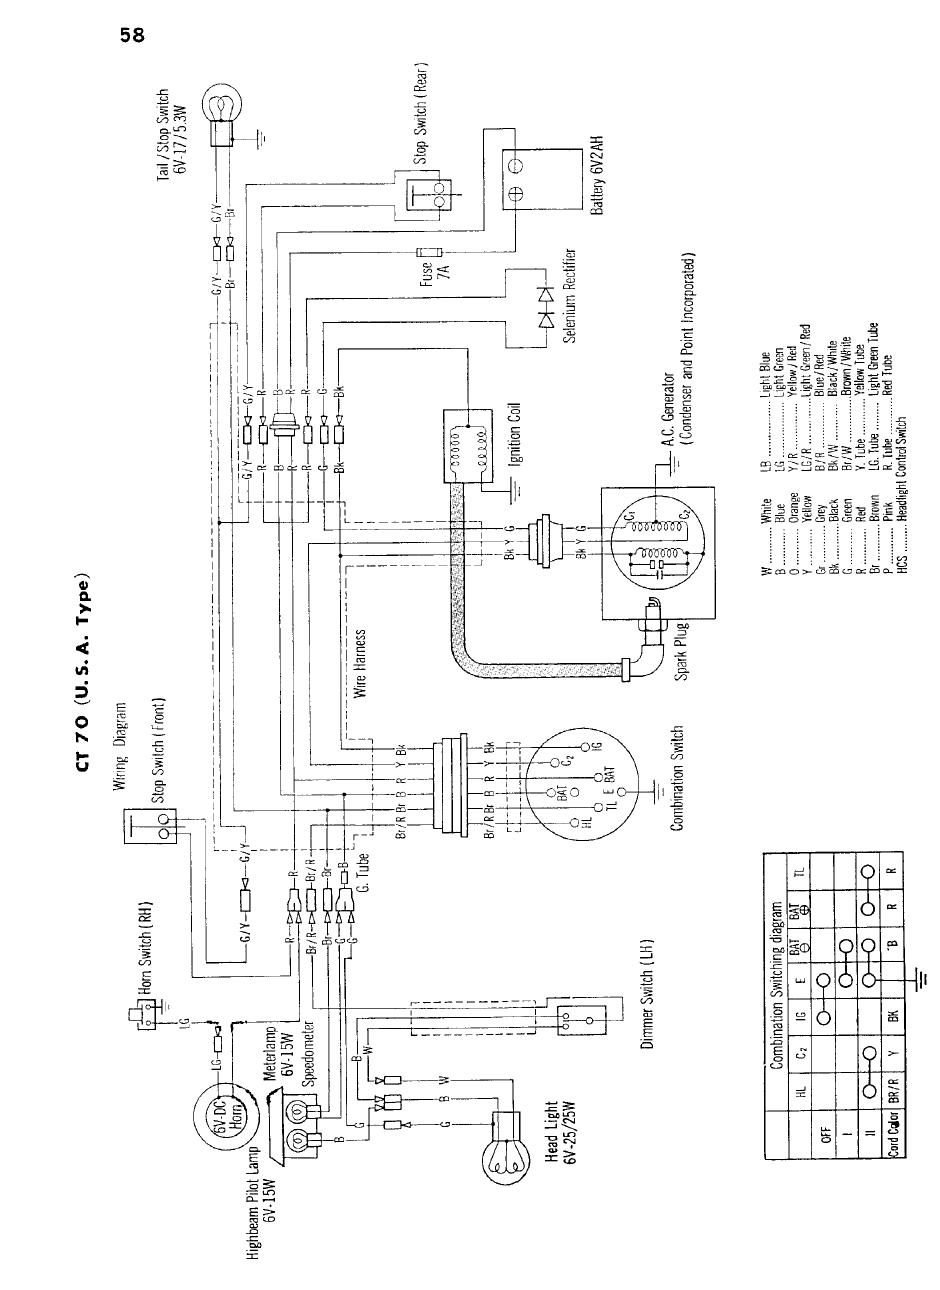 Lifan 150cc Wiring Diagram 110 200cc Motor Need Help Page 2 On Motorcycles Engine